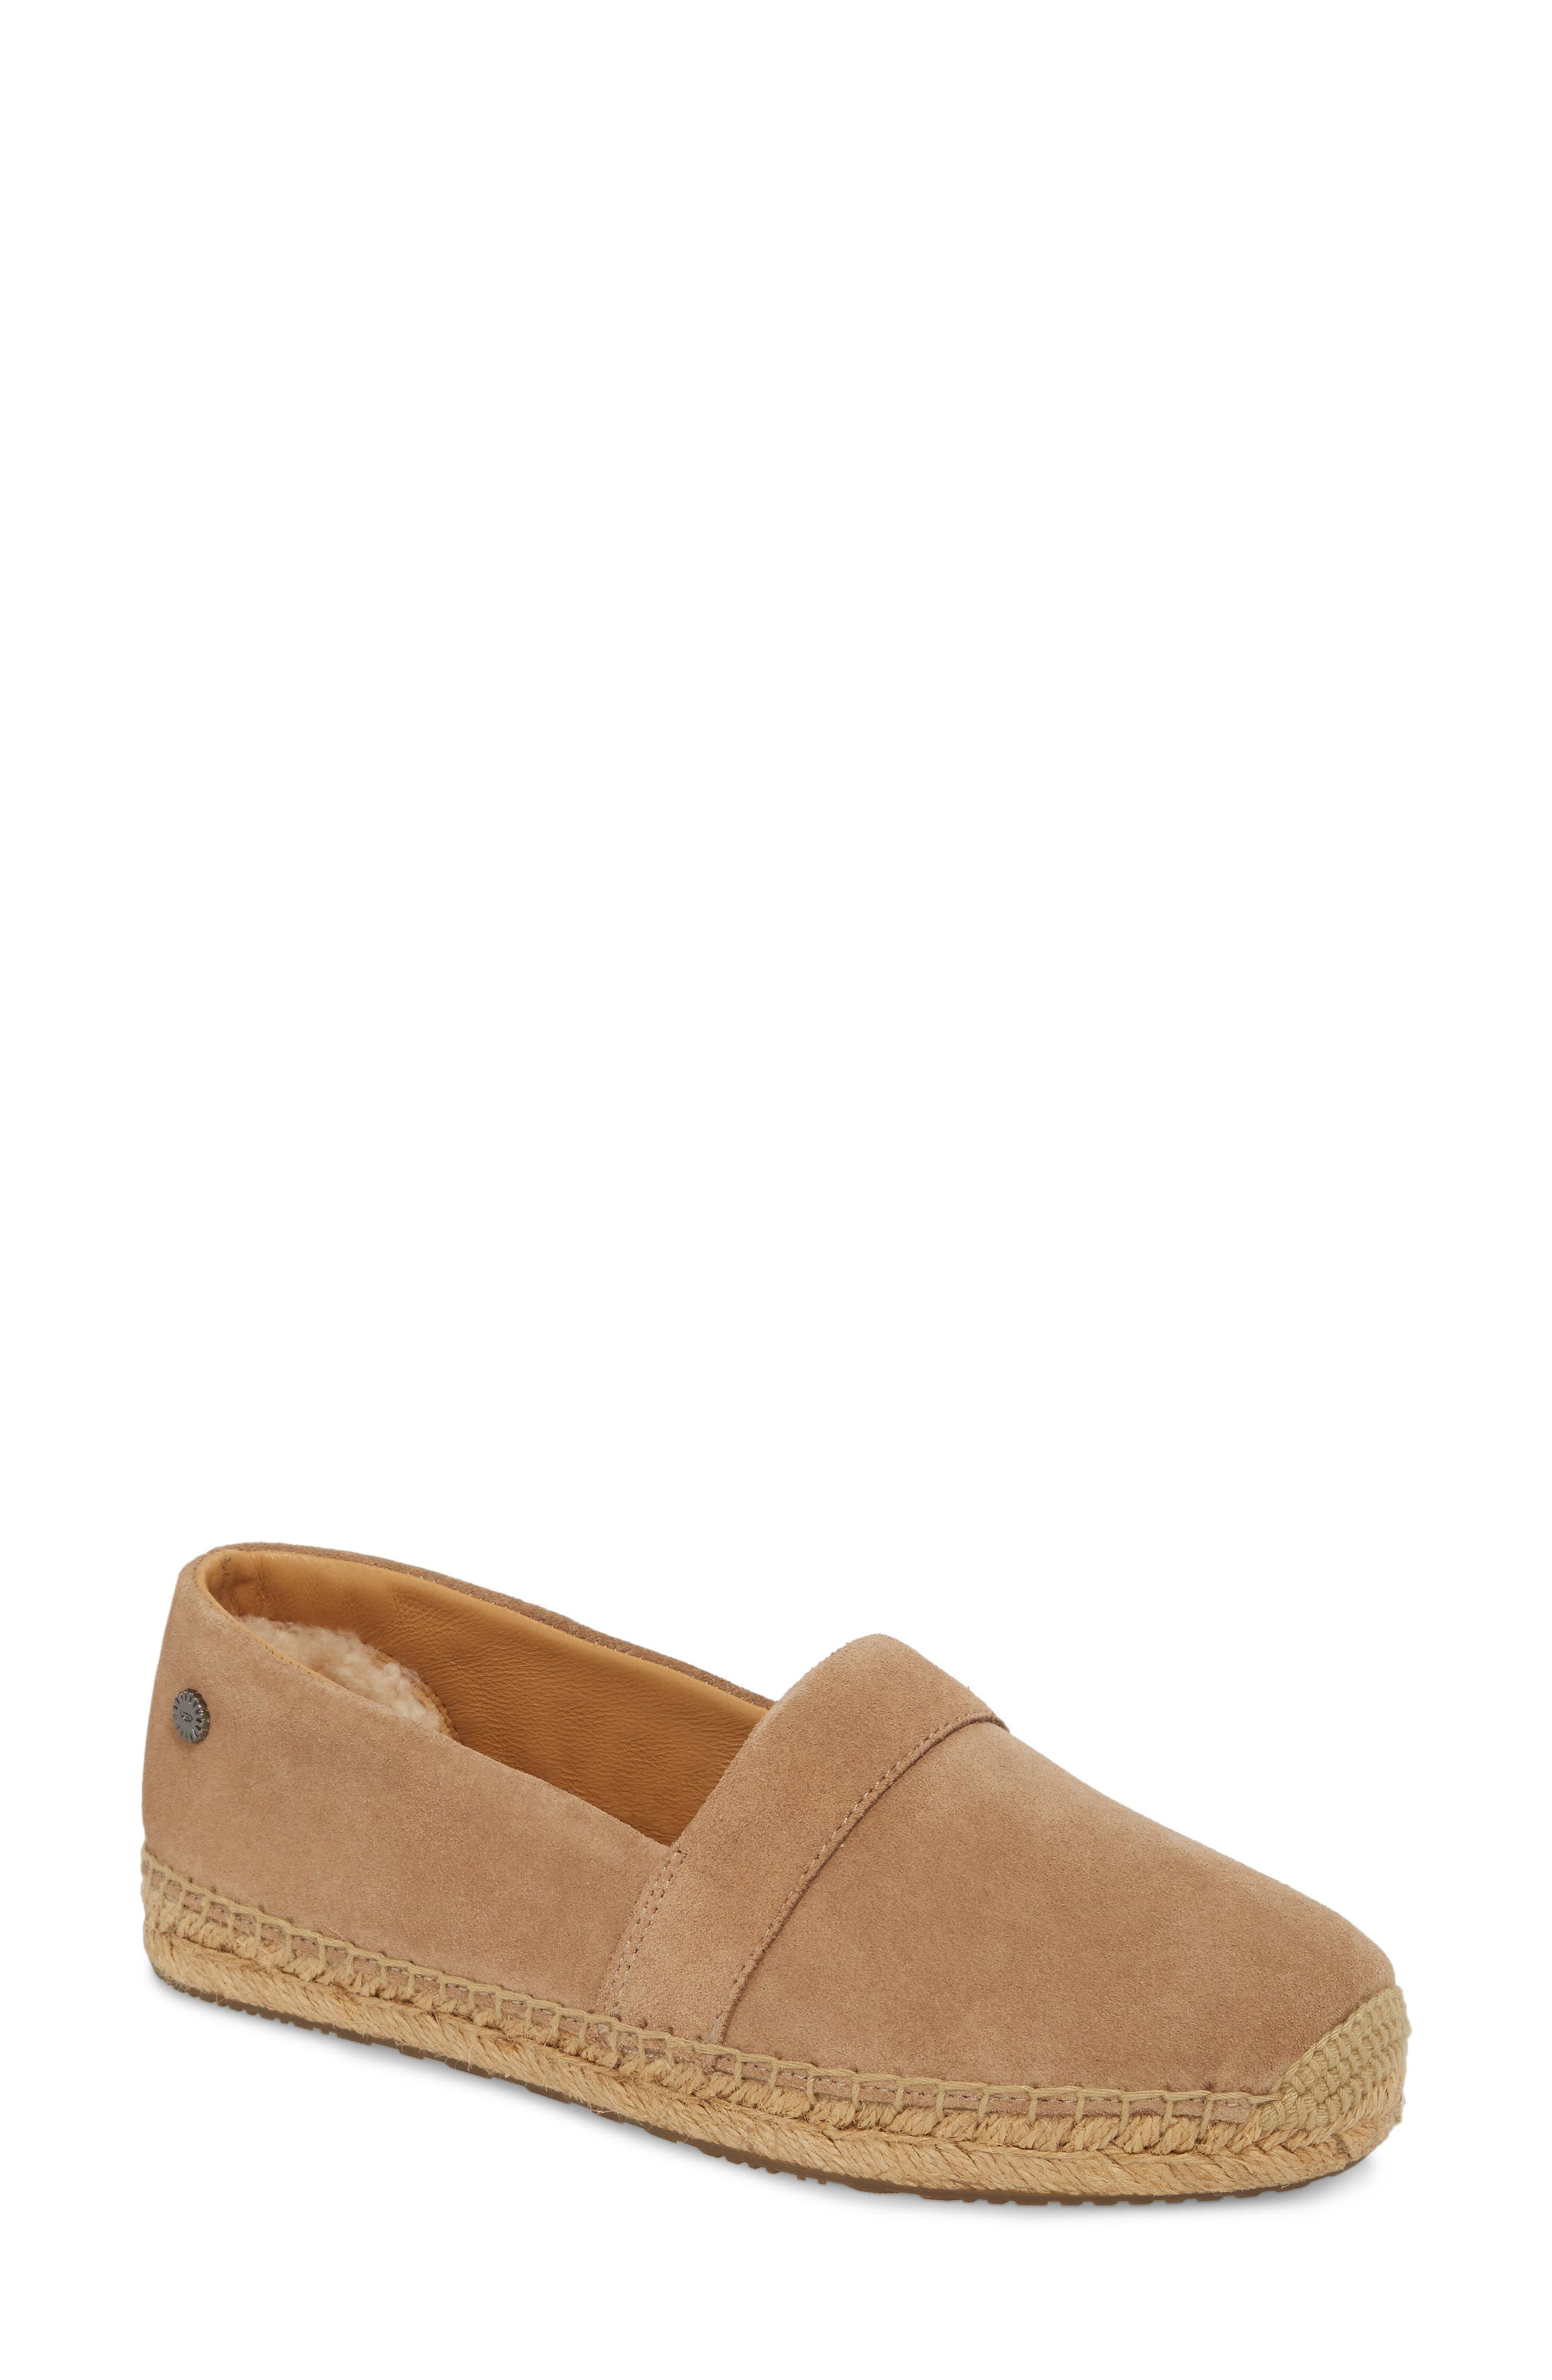 Reneda Espadrille Slip-On,                             Main thumbnail 1, color,                             250